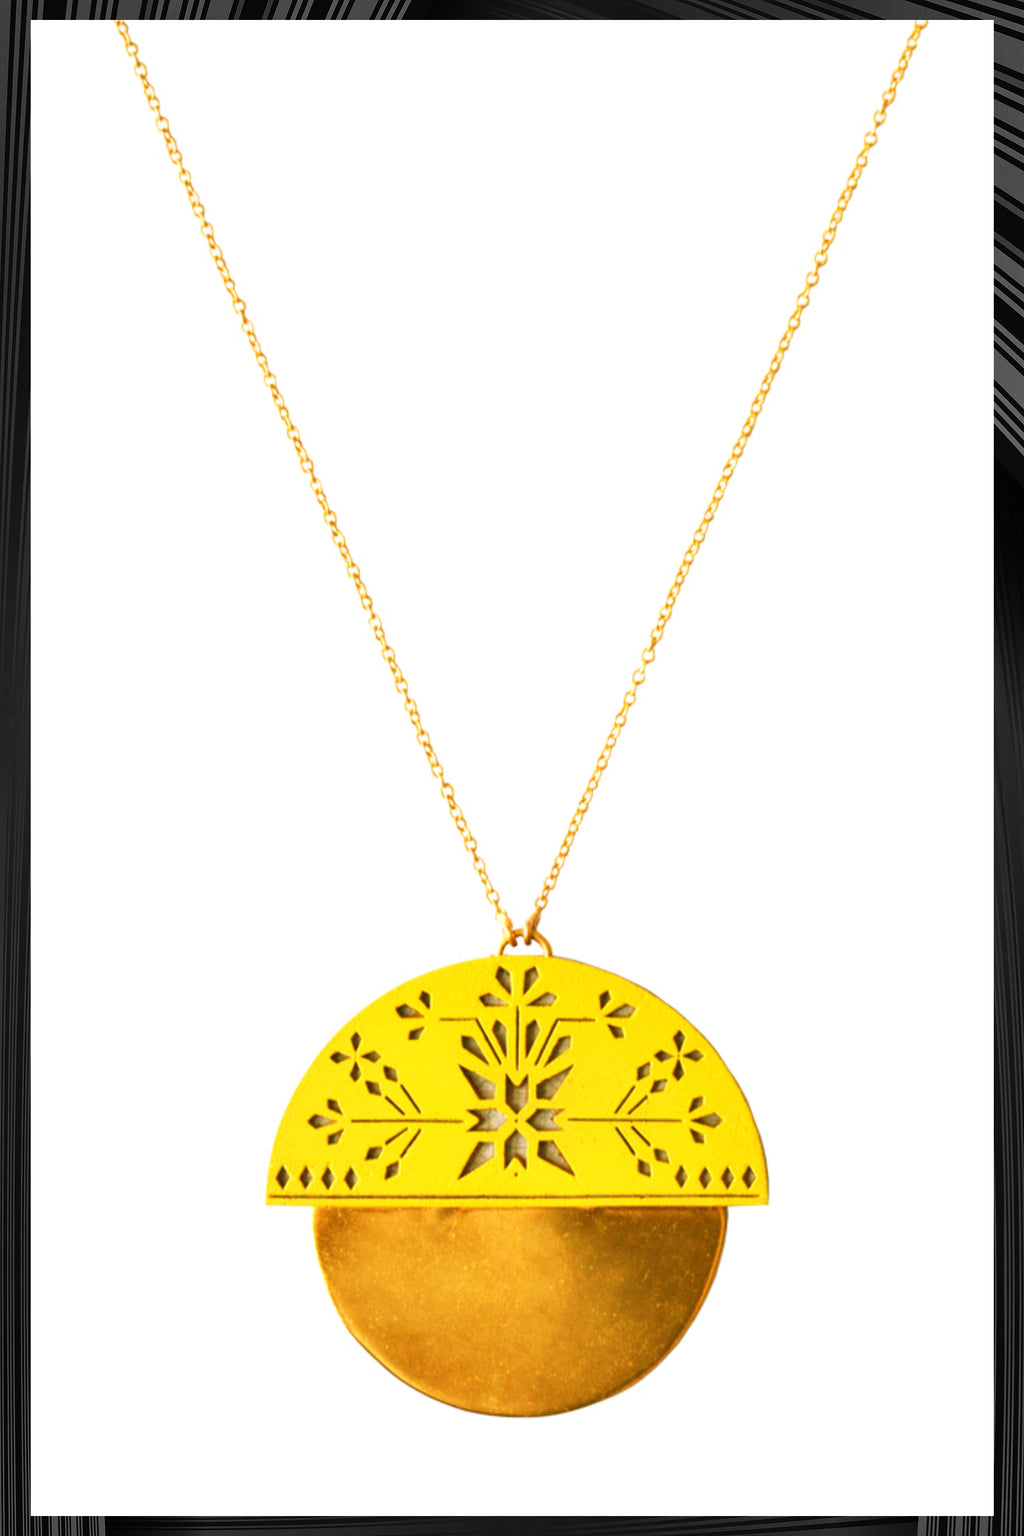 Sheils Haldi Necklace | Free Delivery - 2-3 Weeks Shipping